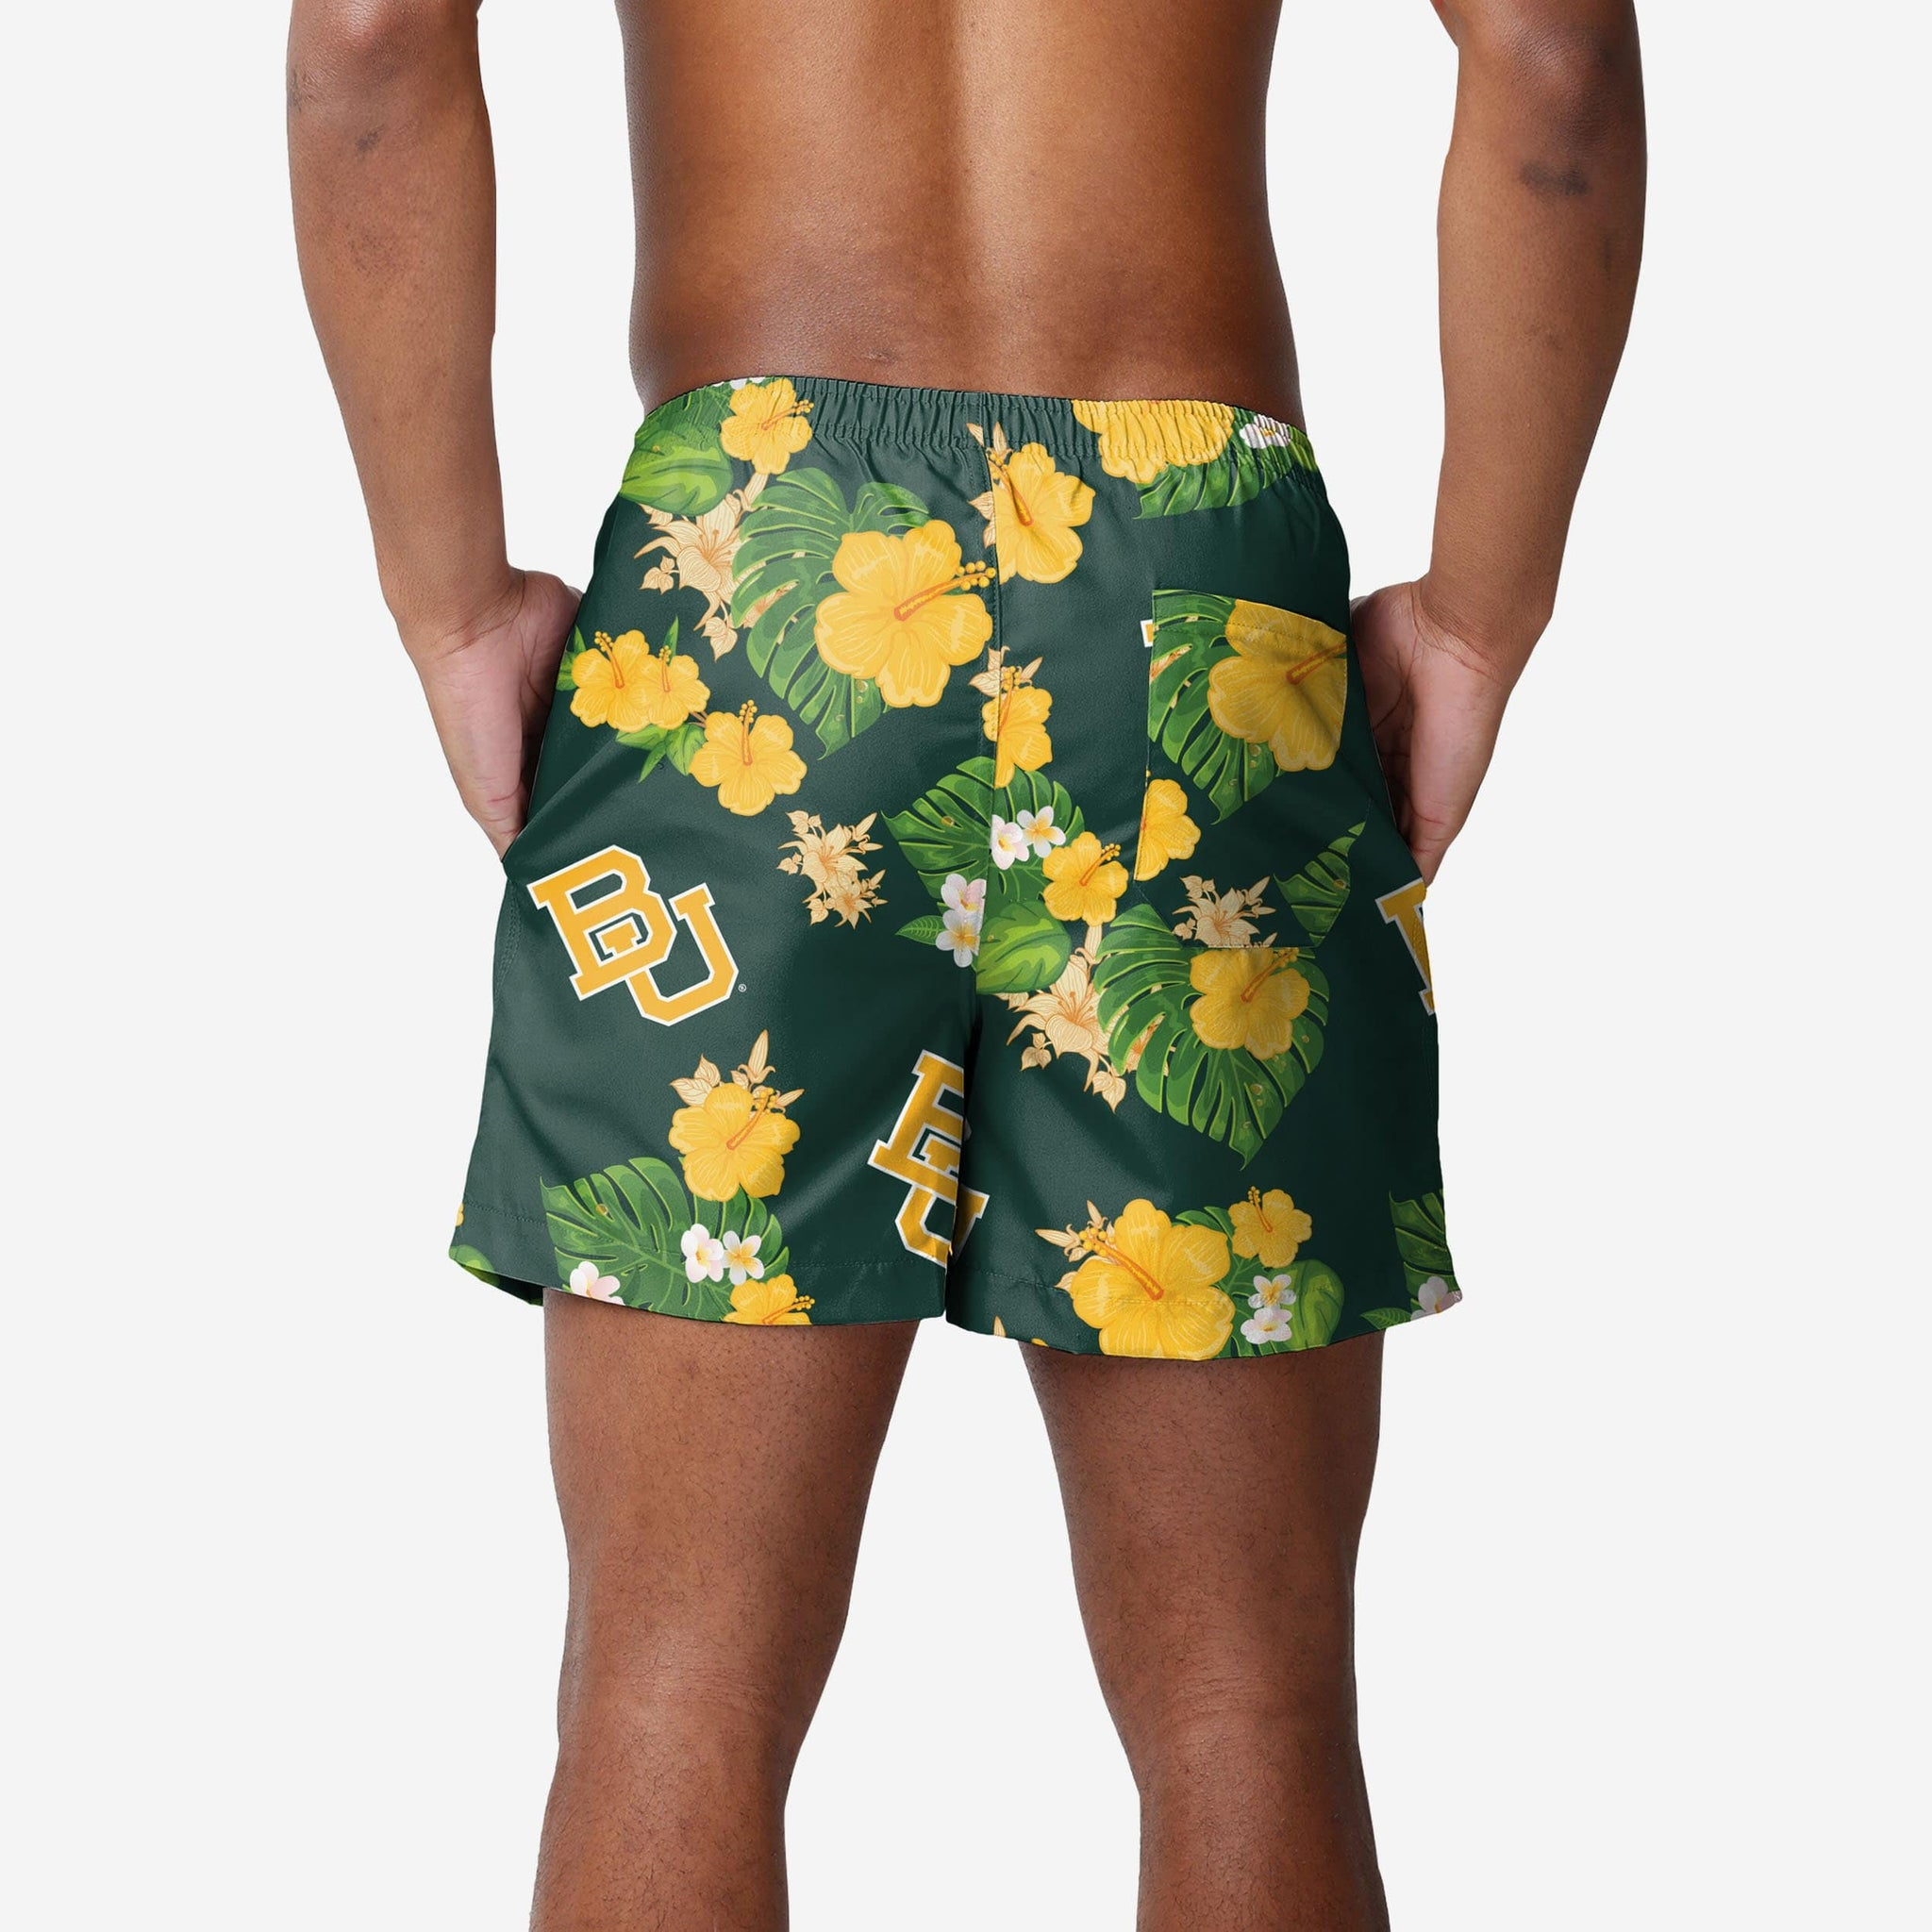 Baylor Bears Floral Swimming Trunks